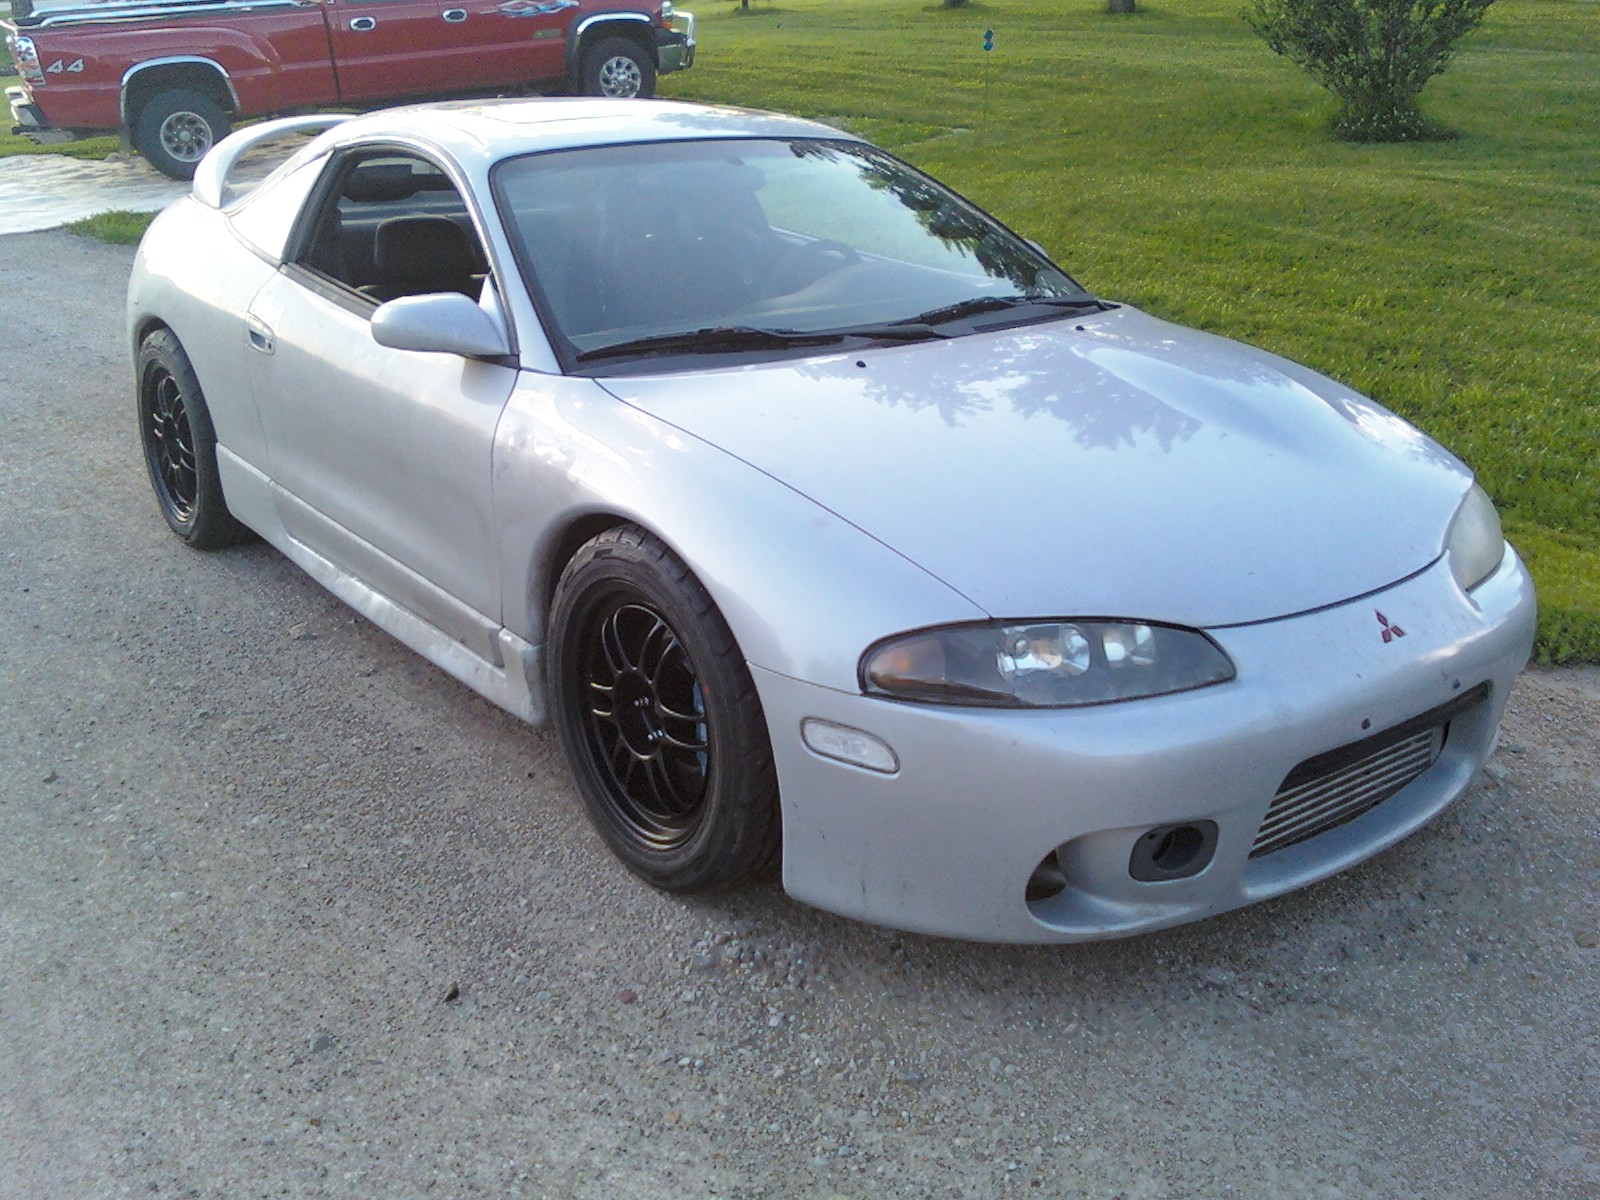 1999 Mitsubishi Eclipse Gsx For Sale